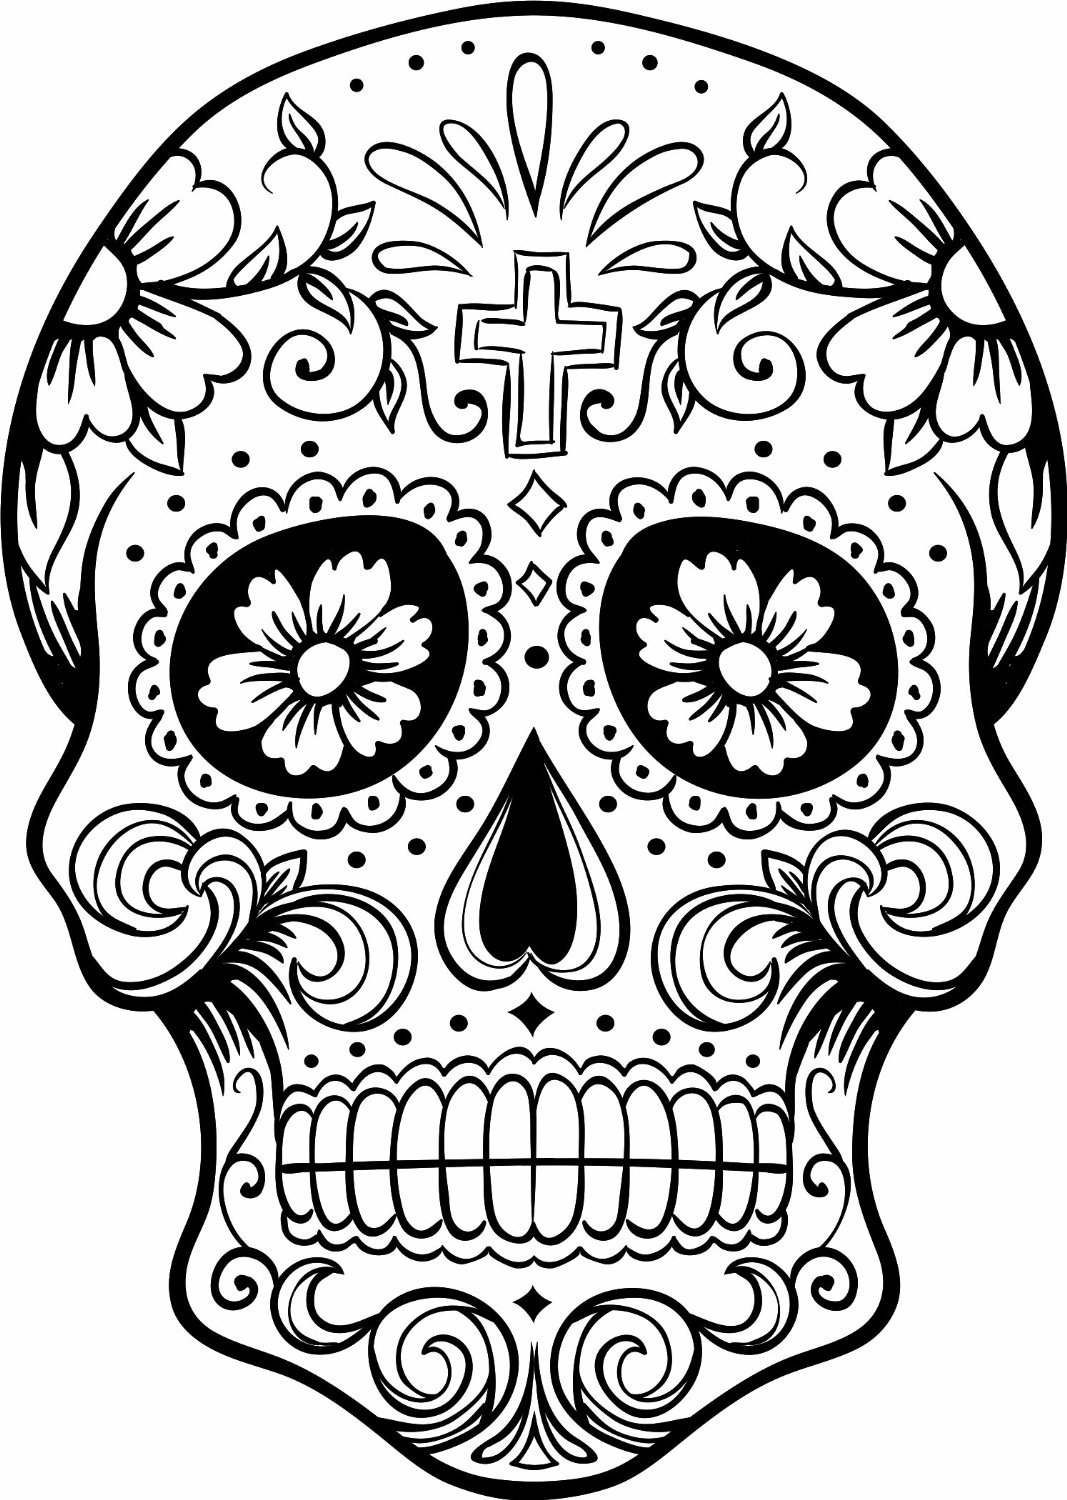 Uncategorized Day Of The Dead Coloring free printable day of the dead coloring pages best mexican skulls